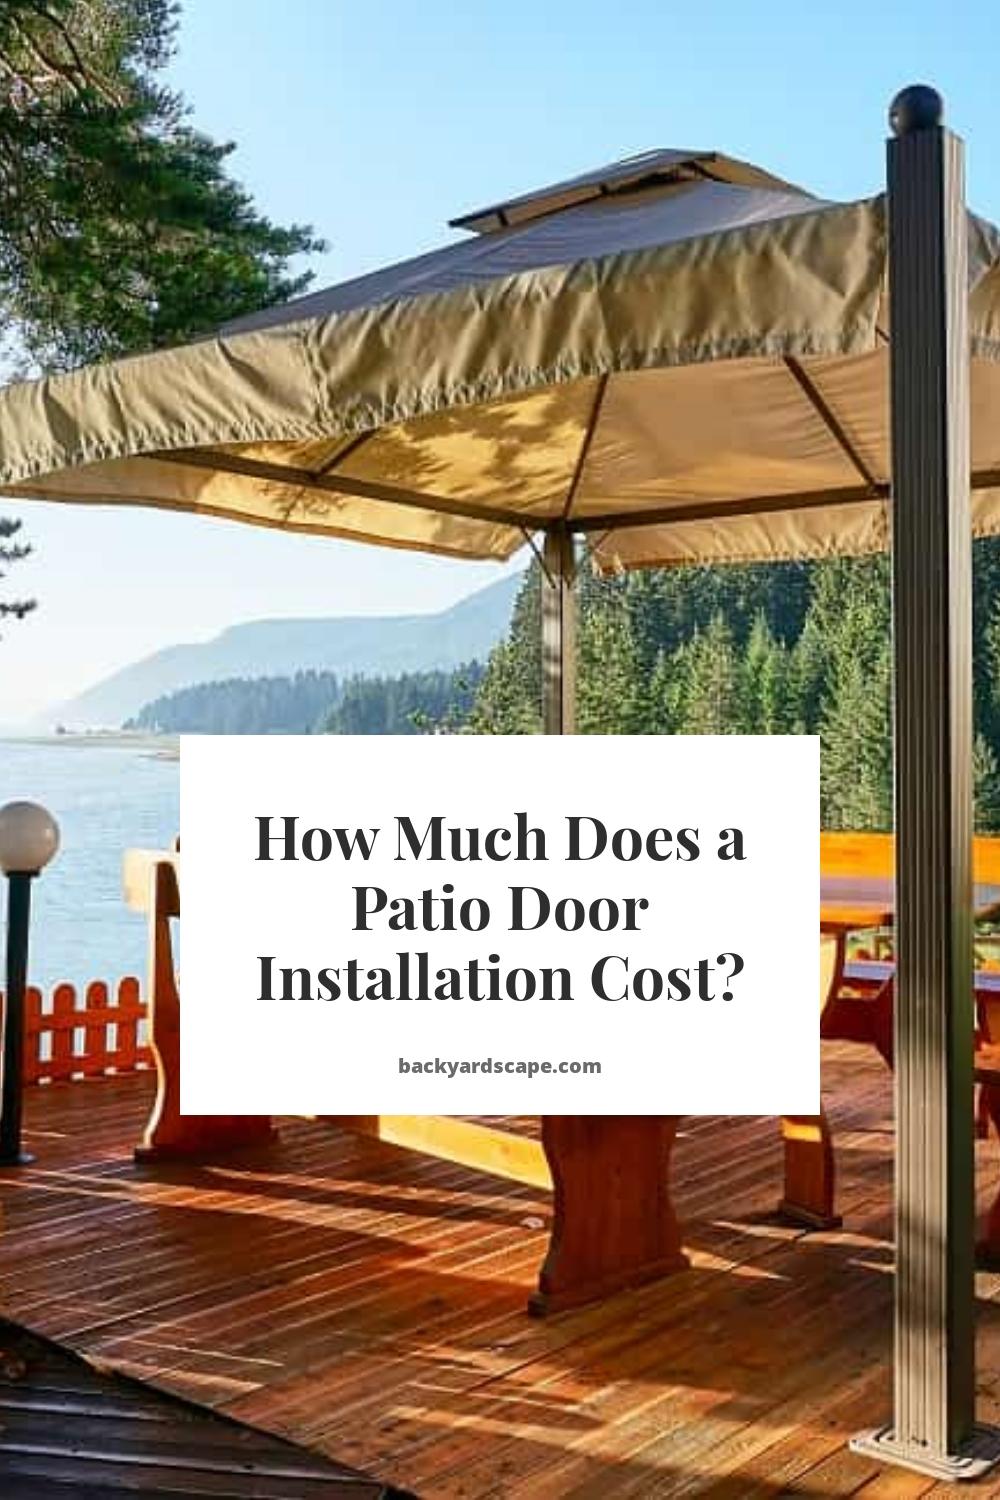 How Much Does a Patio Door Installation Cost?